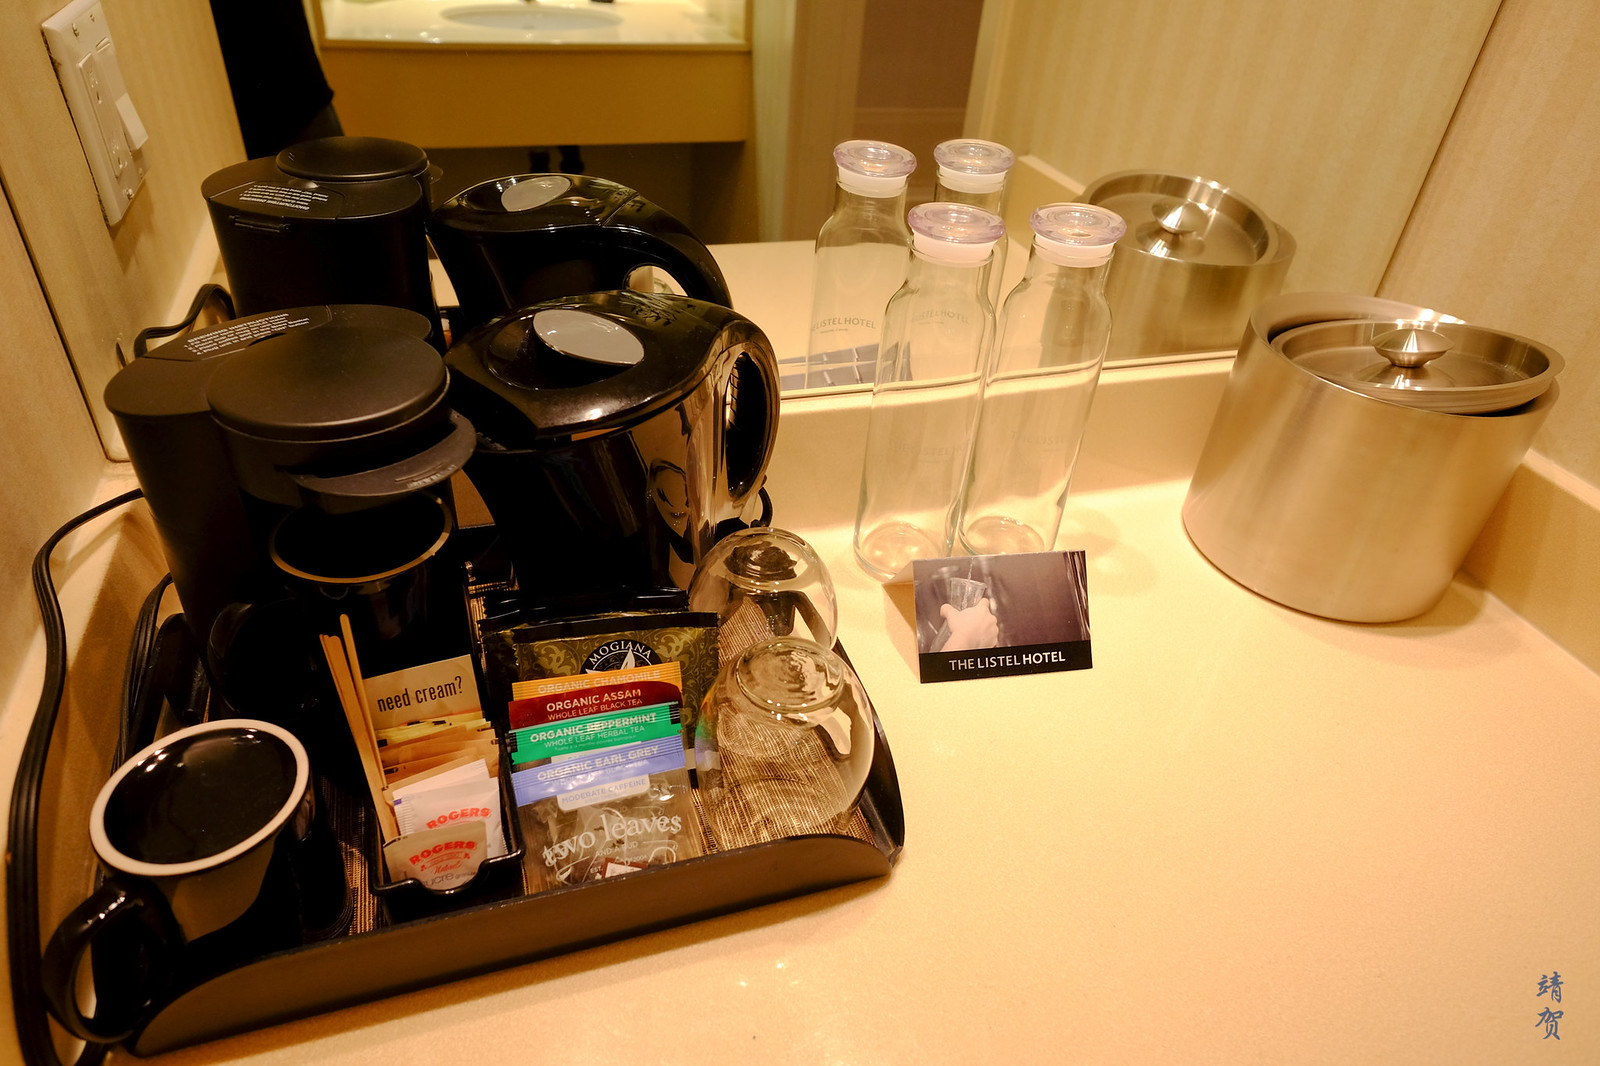 Coffee and tea in the room